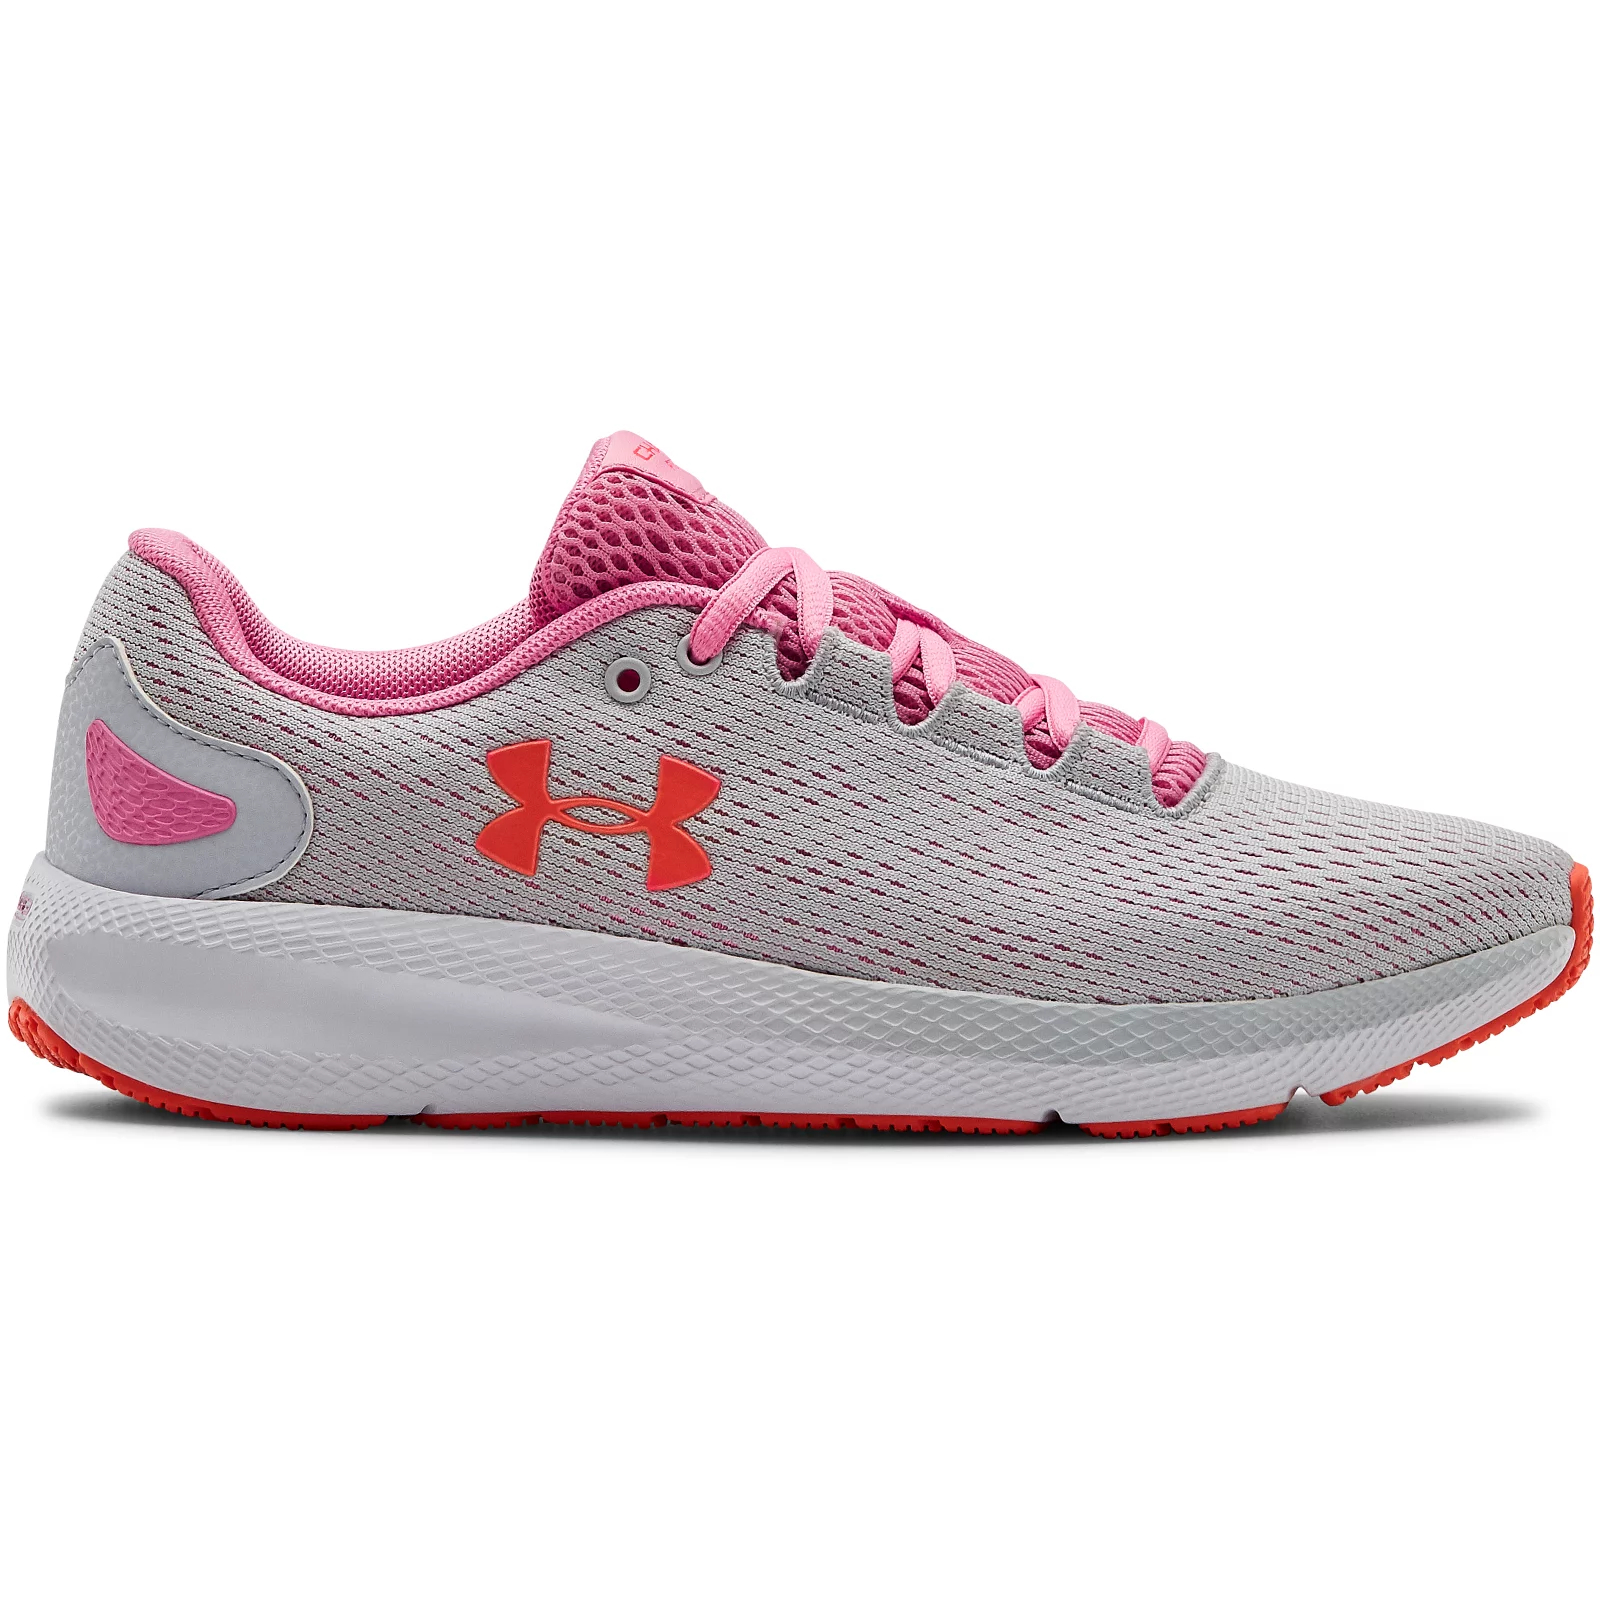 Кроссовки W Charged Pursuit 2 Under Armour Серый